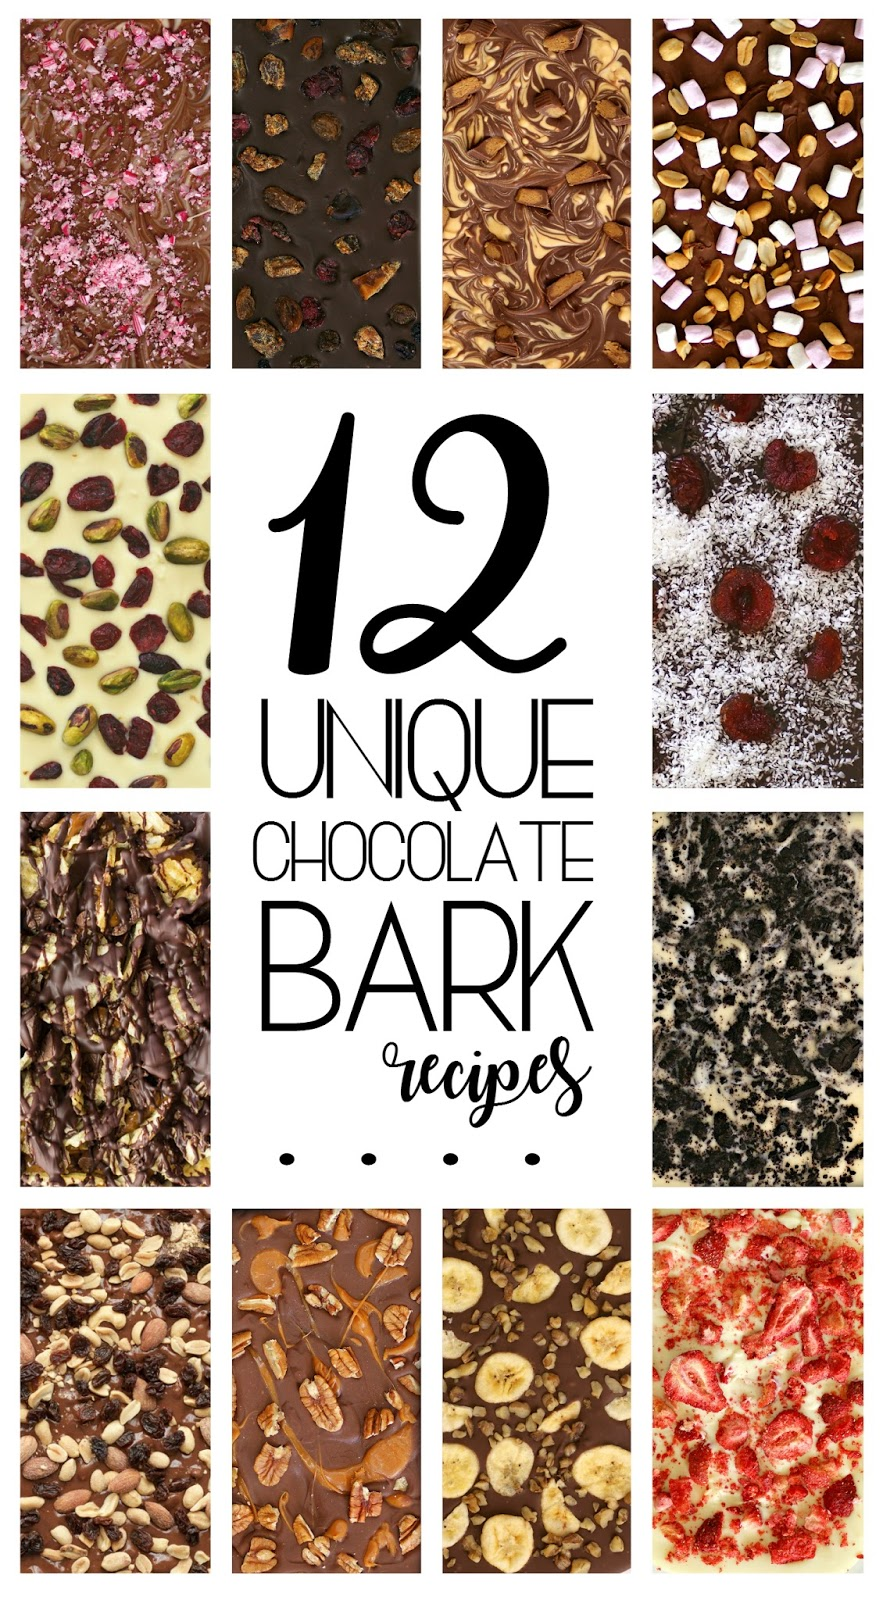 12 Unique Chocolate Bark Recipes for Homemade Christmas Gifts - gluten free, easy holiday recipes, food gift ideas, easy handmade gifts, DIY hostess gifts, gourmet homemade chocolates